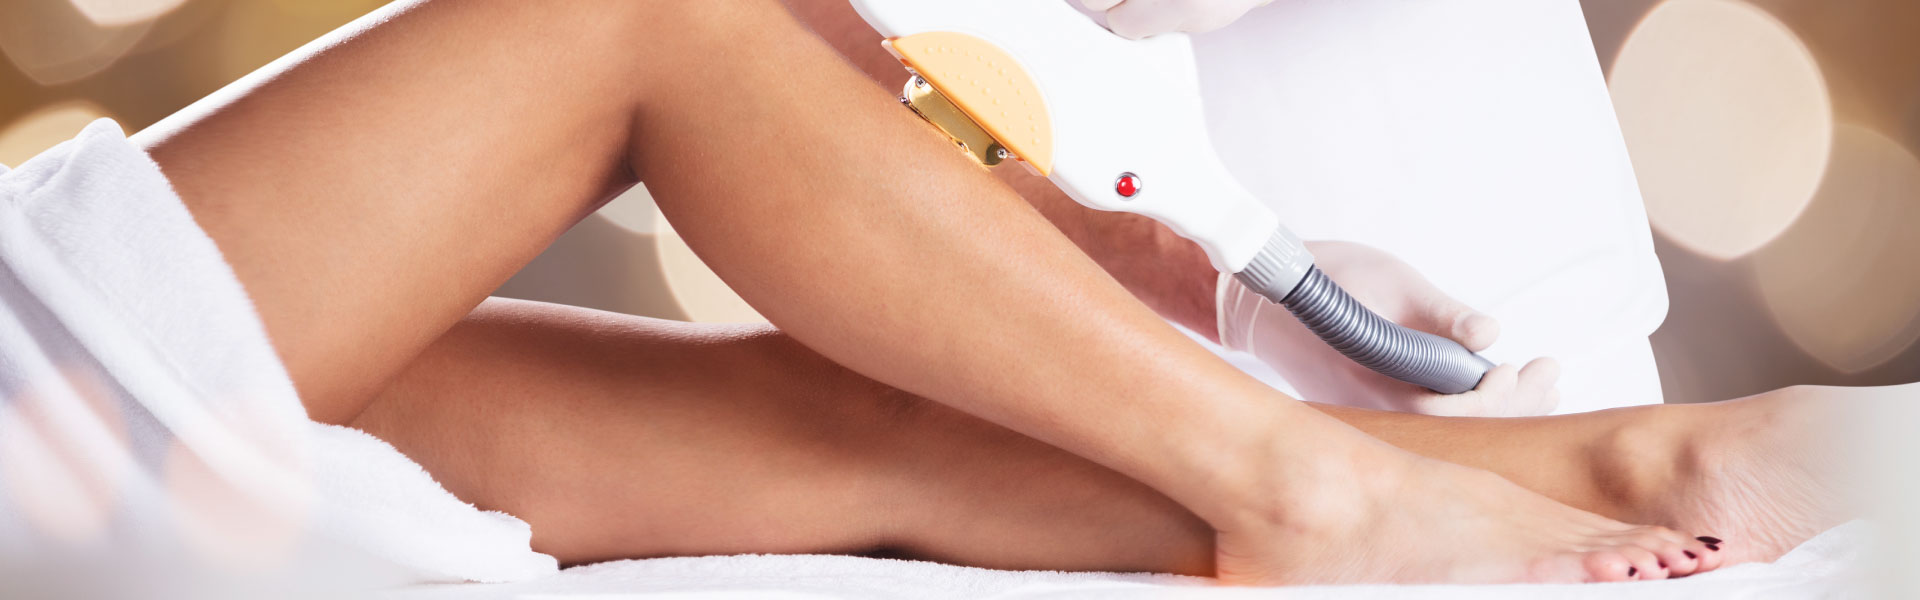 Cheshire Aesthetic Clinic | Inch Loss Skin Care and Hair Removal | Legs and hair removal